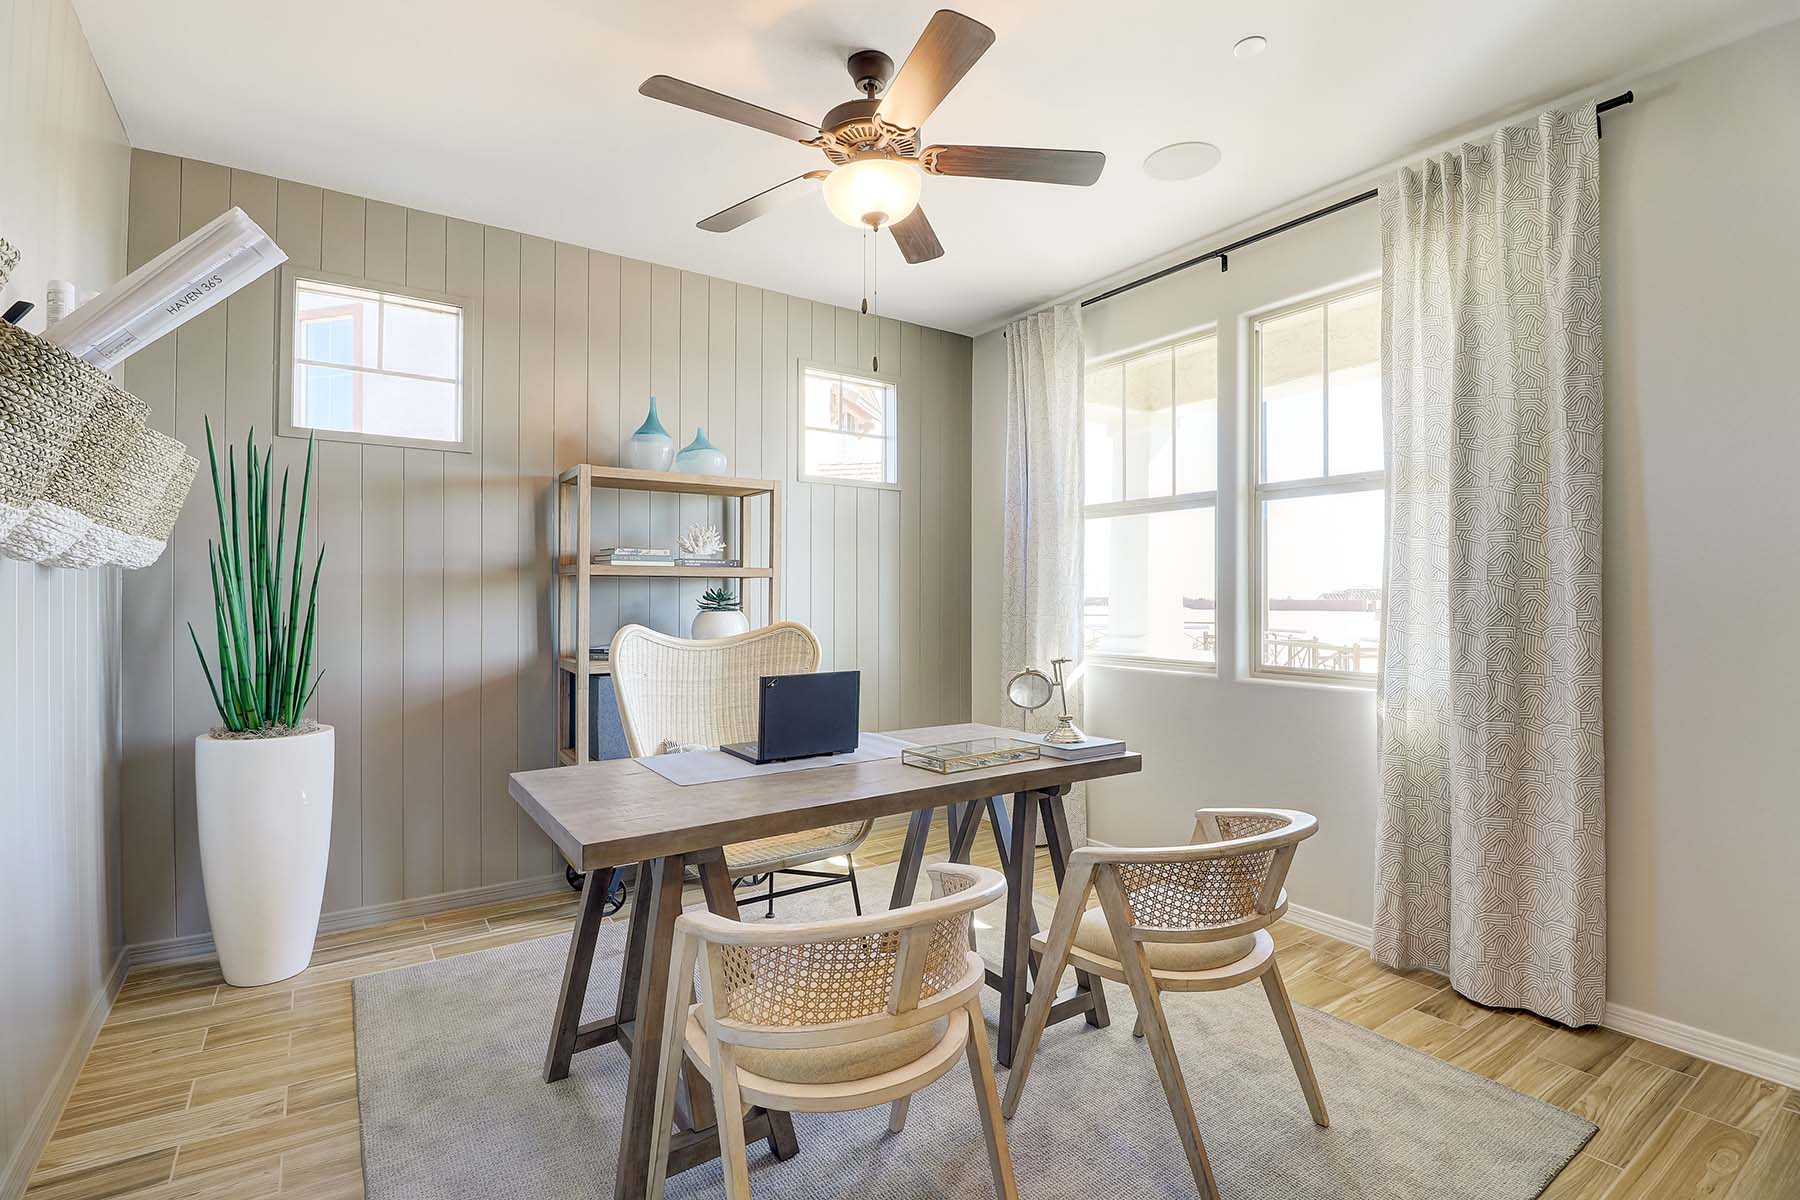 Everly Plan Study Room at Brookside at Arroyo Seco in Buckeye Arizona by Mattamy Homes